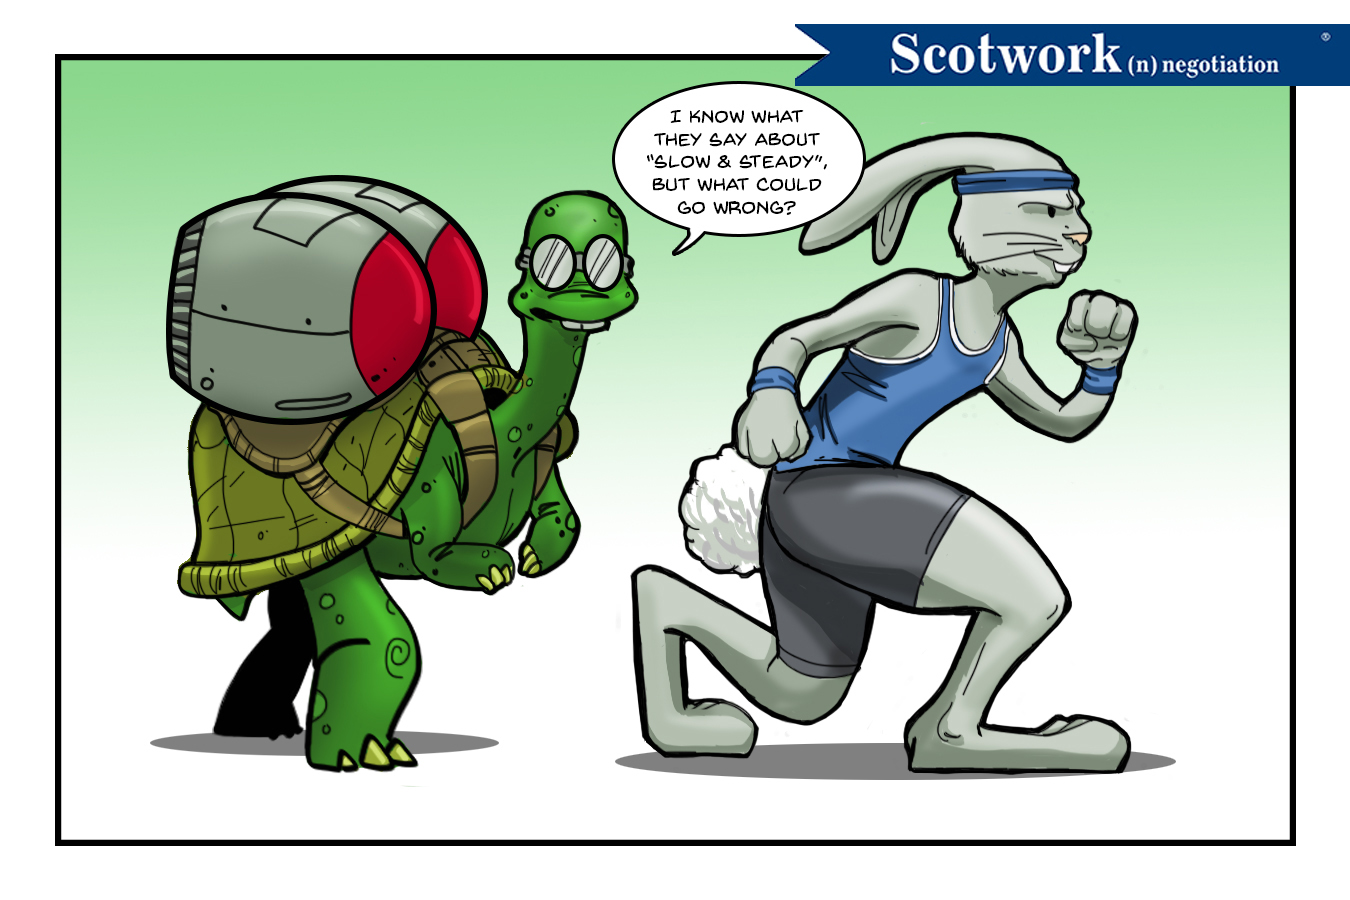 scotwork_comic_2018_10_22-moving-too-fast.jpg